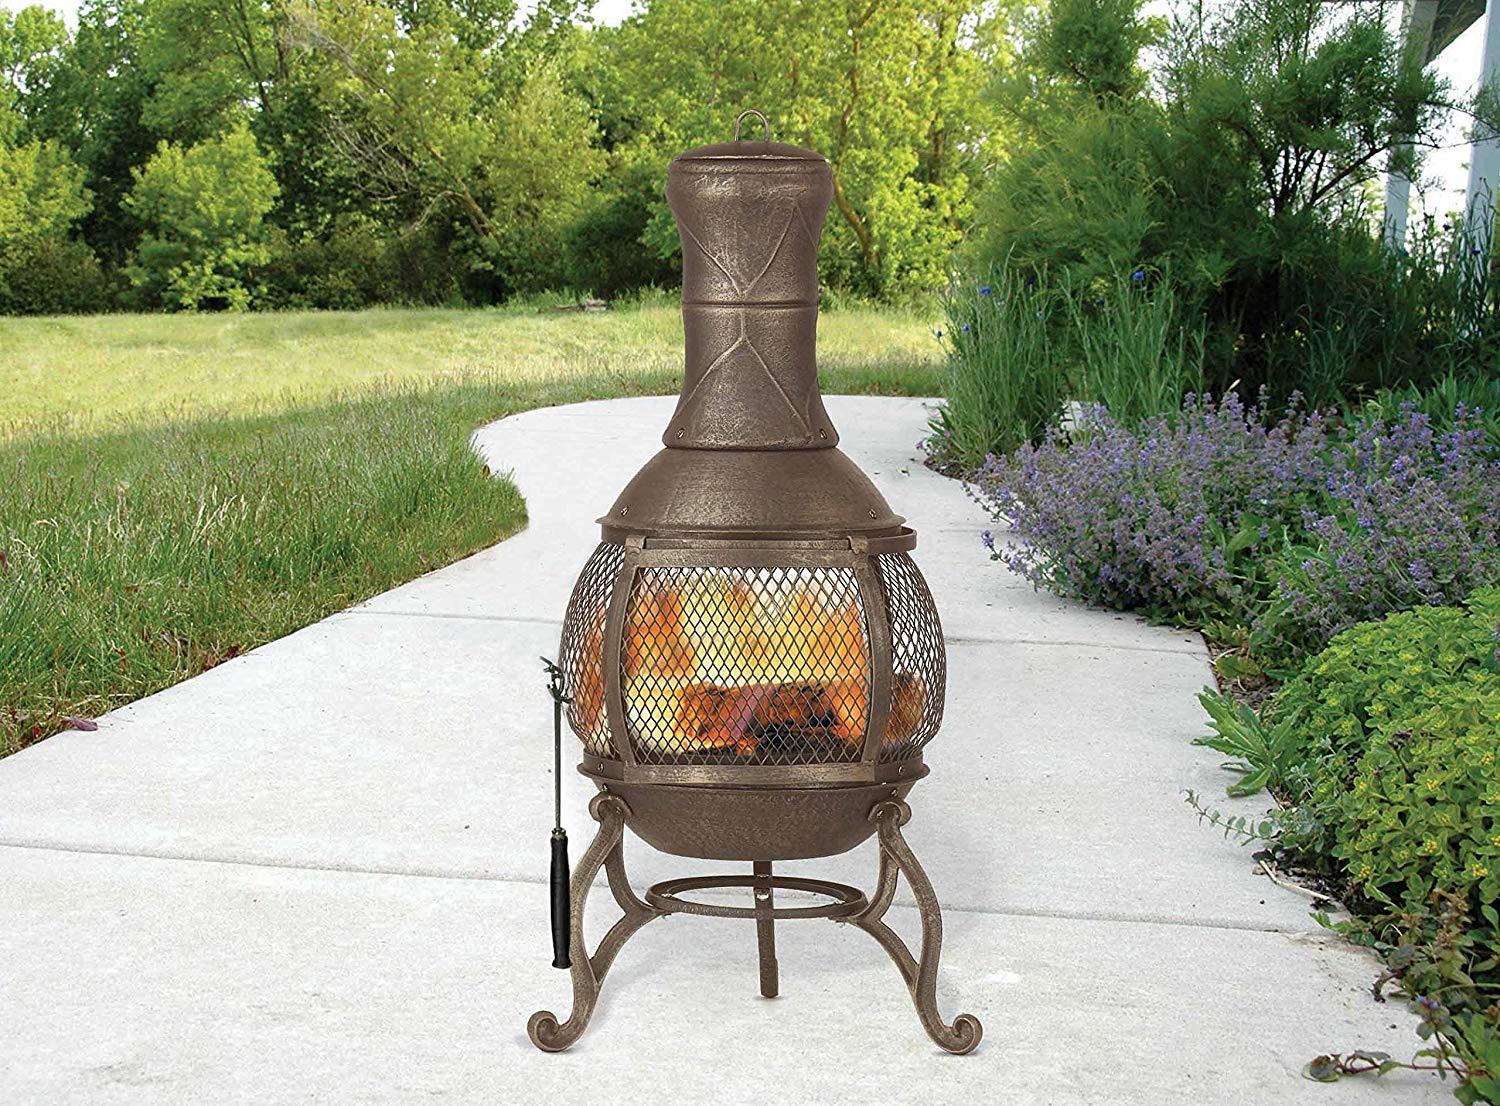 Cast Iron Chiminea Fireplace Compact Patio Fire Pit Outdoor Wire Mesh Screen 360 Degree View Heat Distribution Easy Refuel Small 35 Inch High Log Wood Burning by Patio Joy